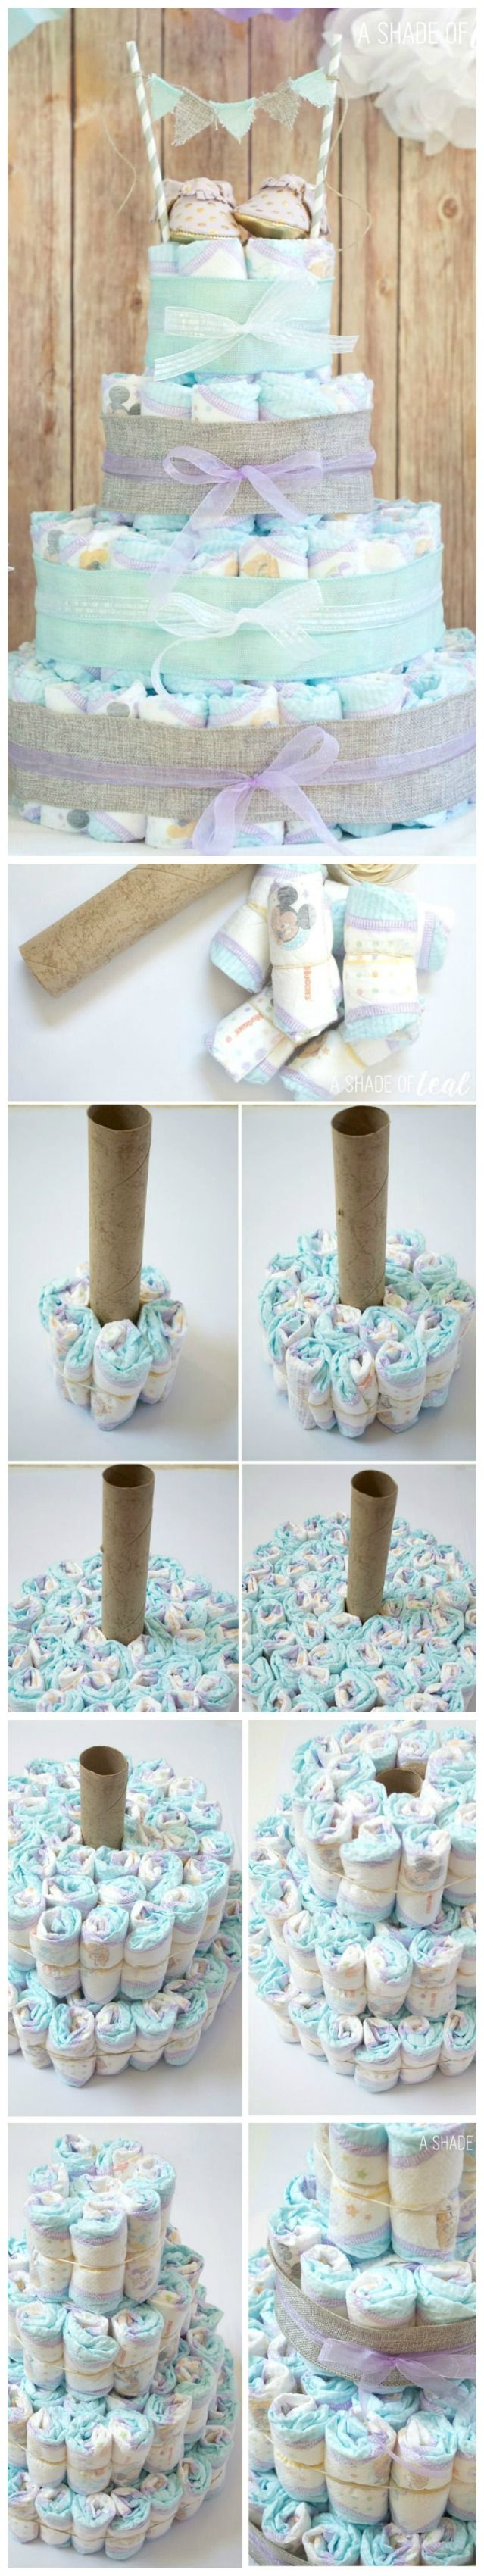 Best 25 Diaper cakes ideas on Pinterest